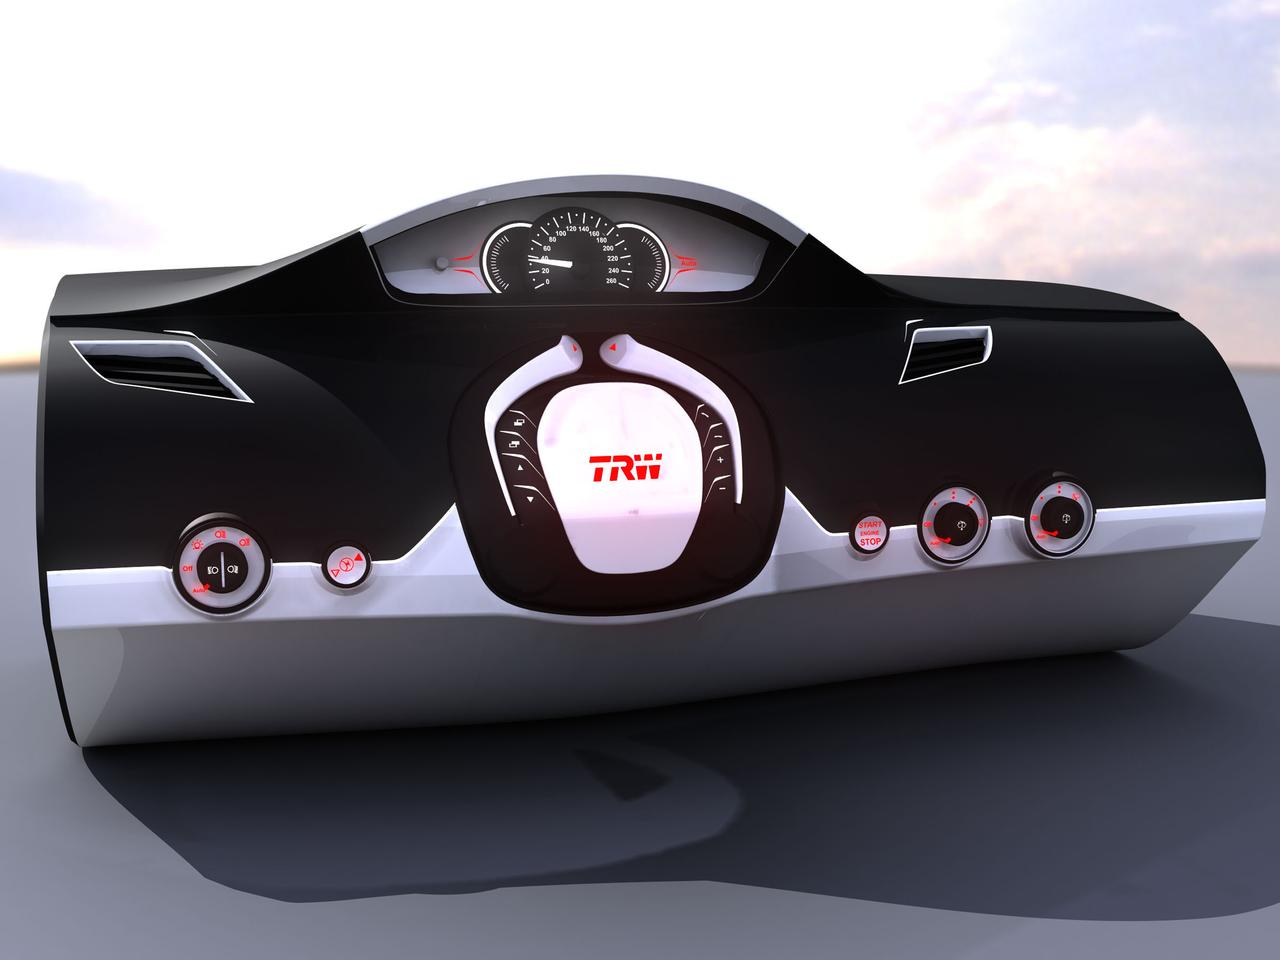 TRW Automotive is developing a folding, retractable steering wheel, that would make it easier to get in and out of small cars